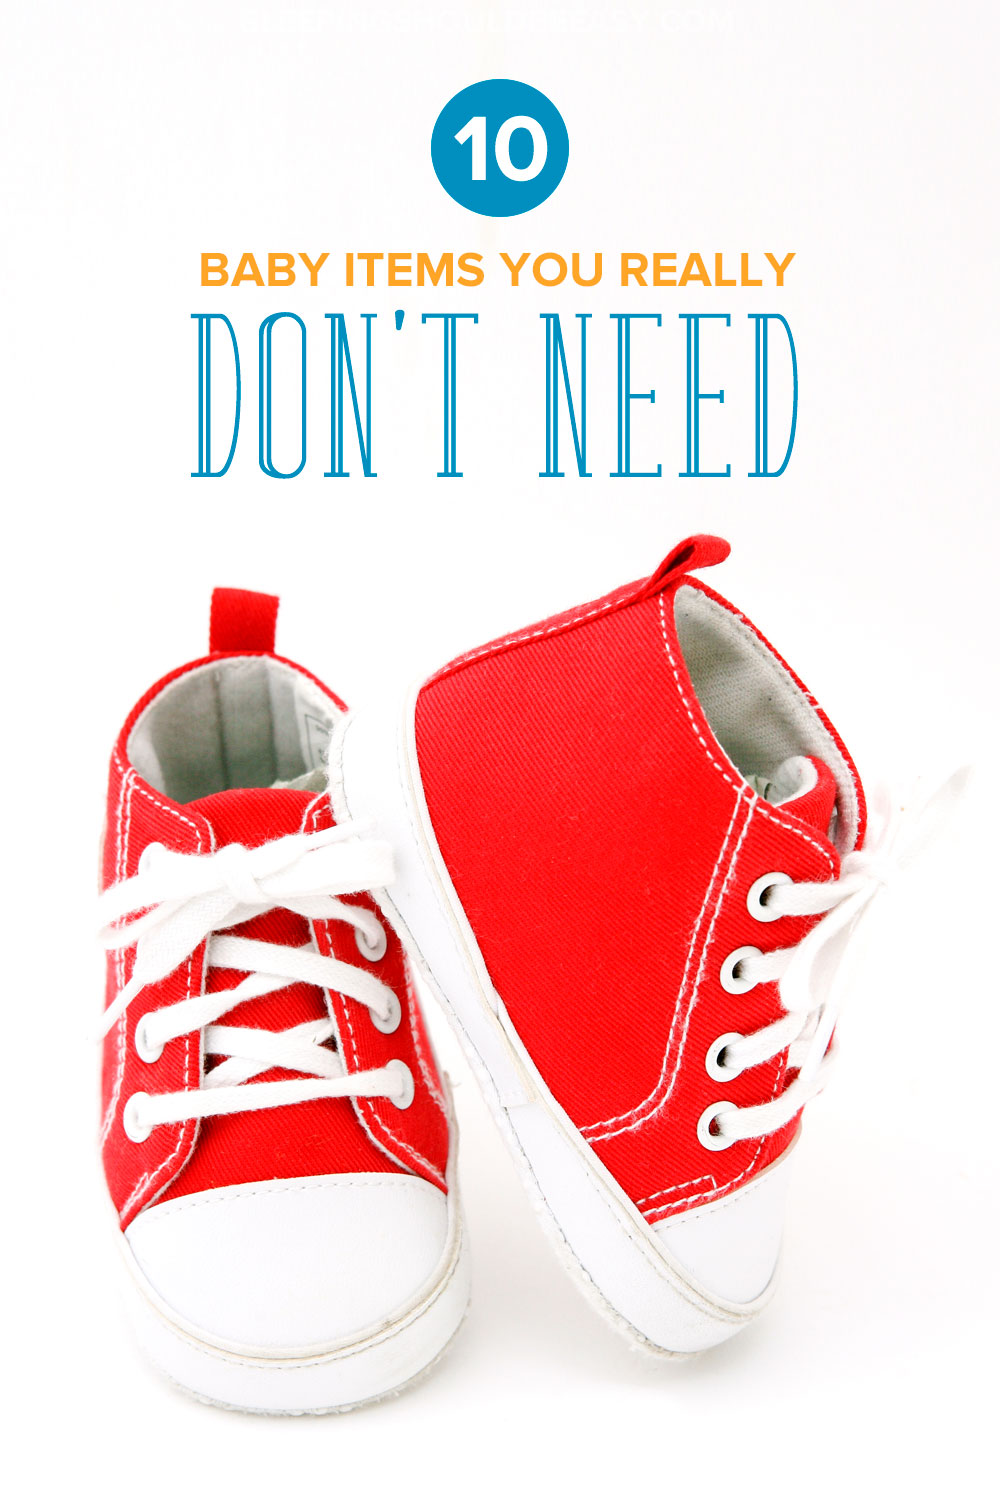 A pair of baby shoes: 10 baby items you really don't need